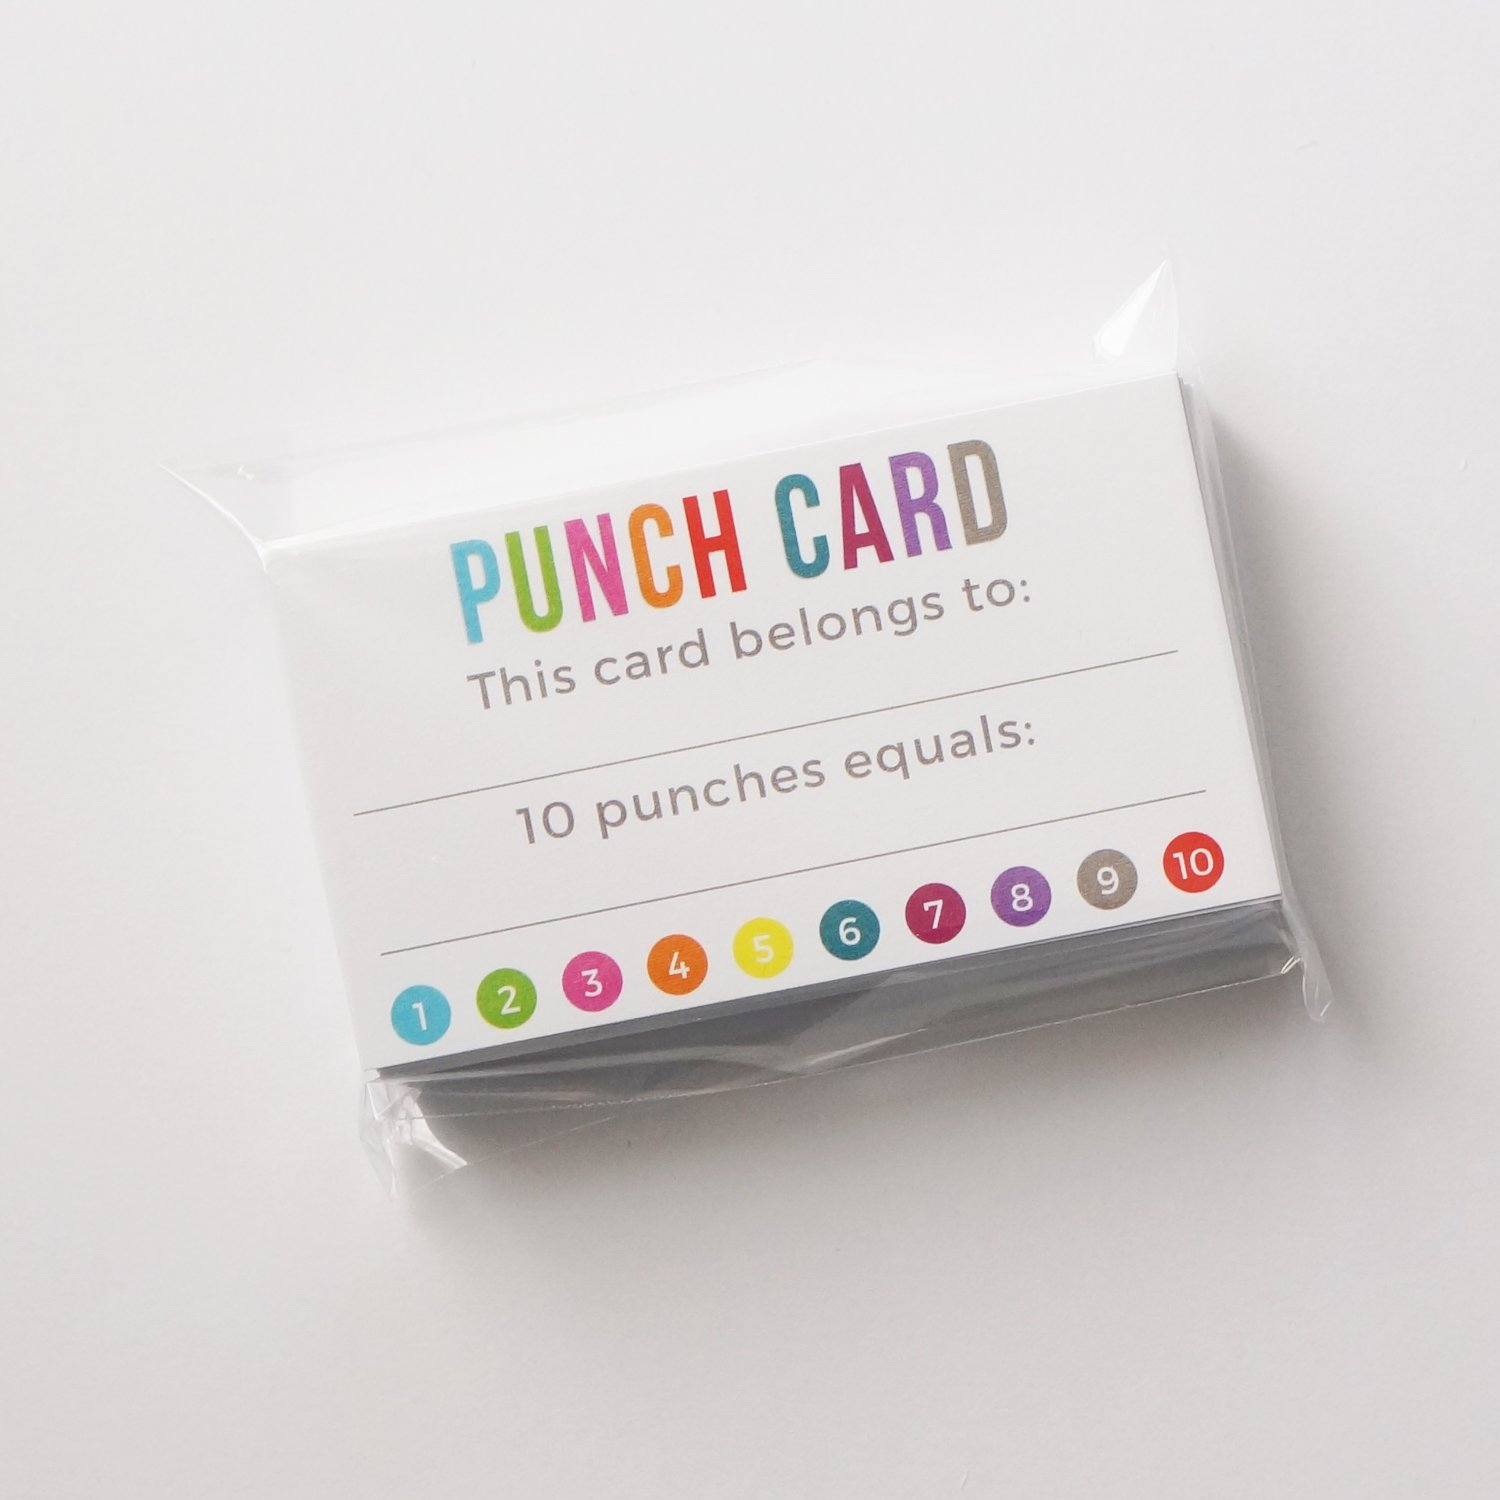 Punch Card - Incentive Loyalty Reward Cards - Business Card Size 3.5 ...